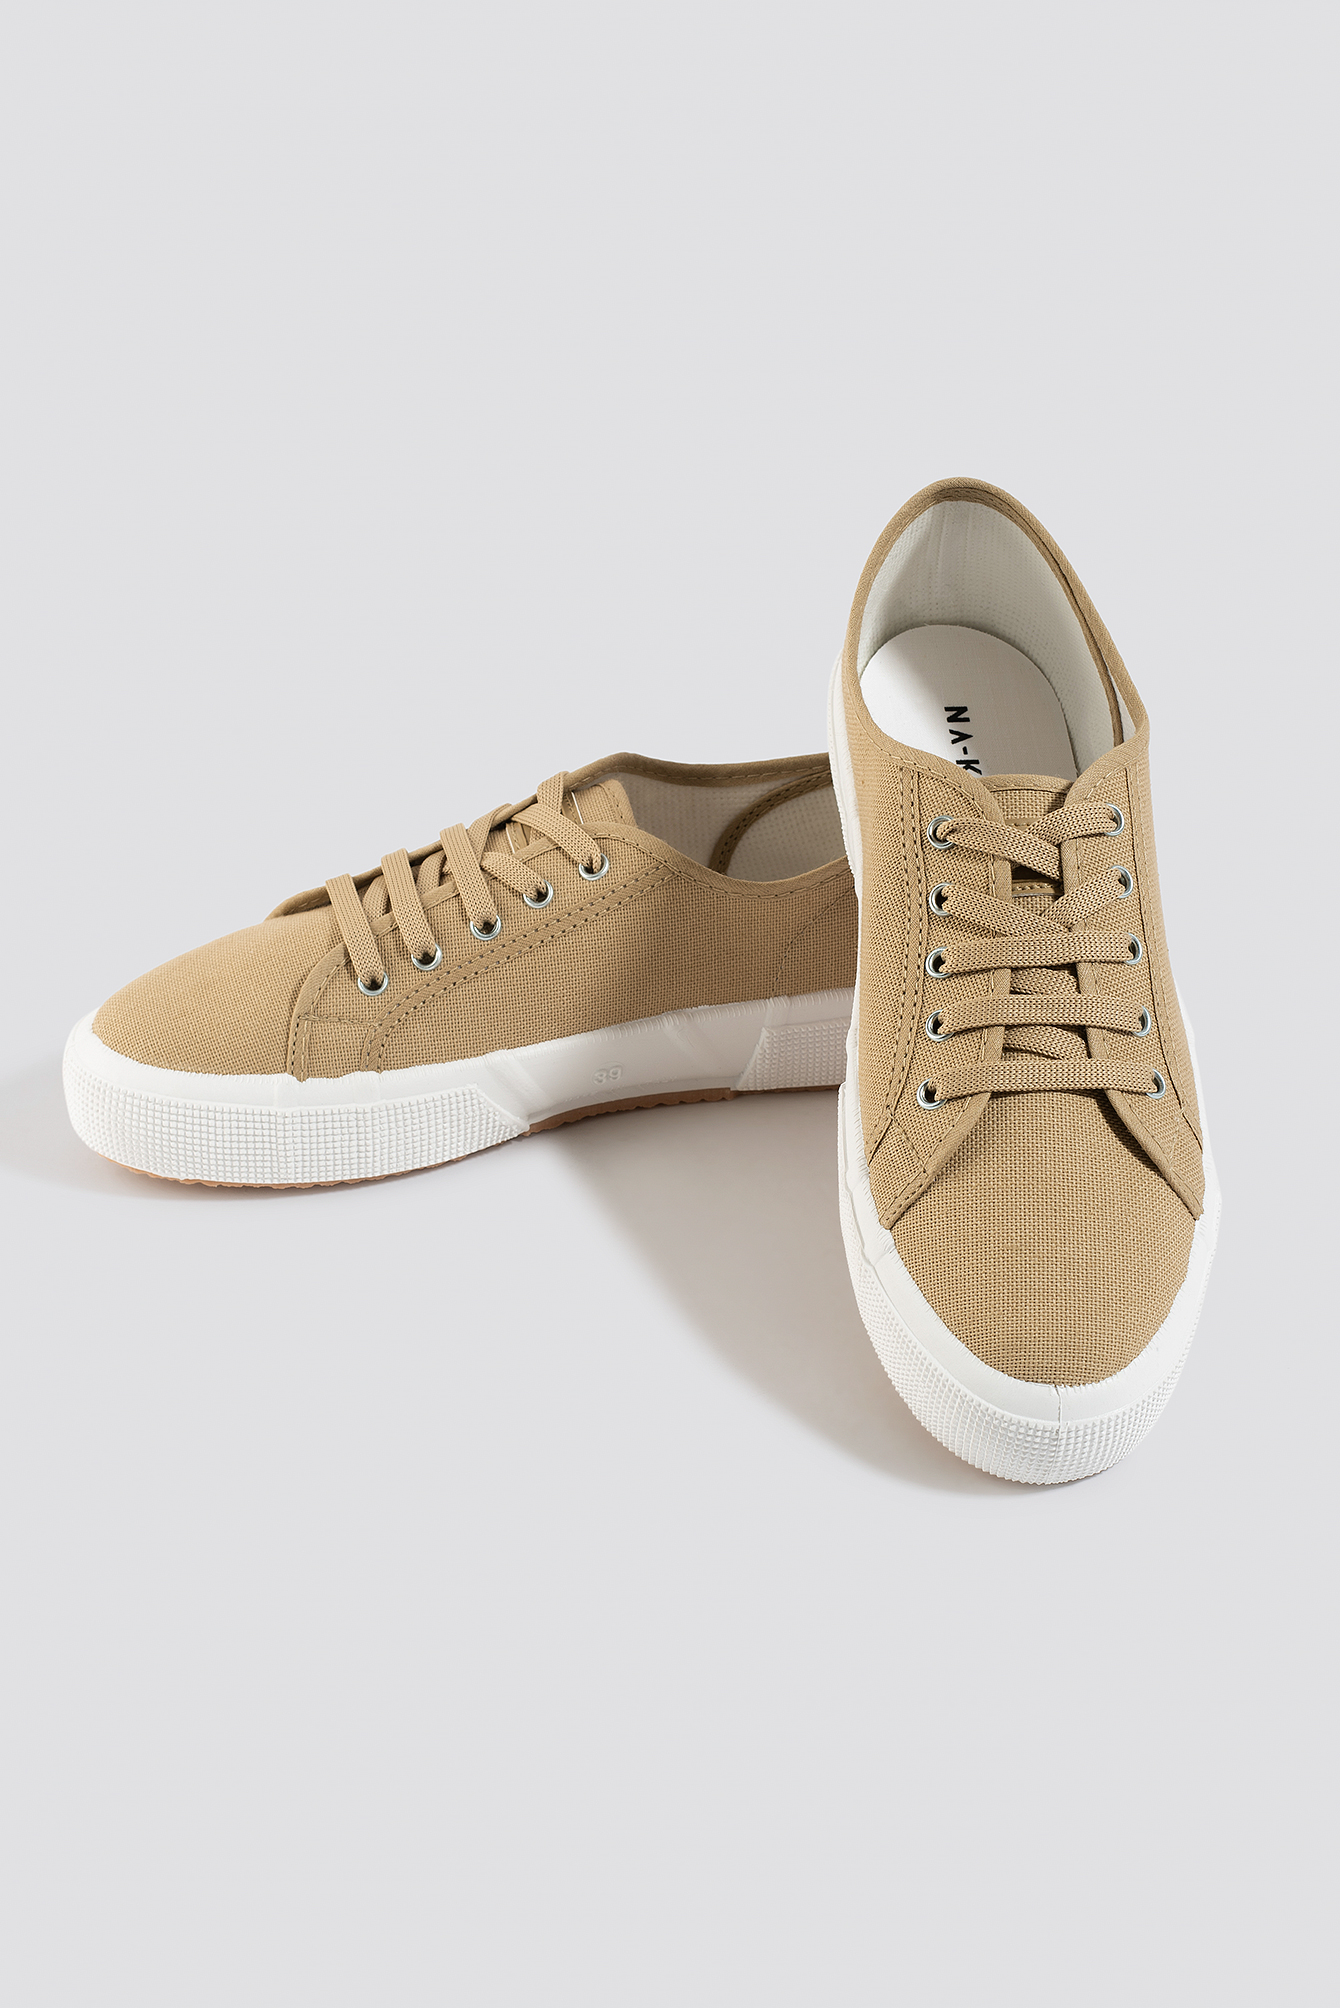 NA-KD Shoes Basic Canvas Sneakers - Beige